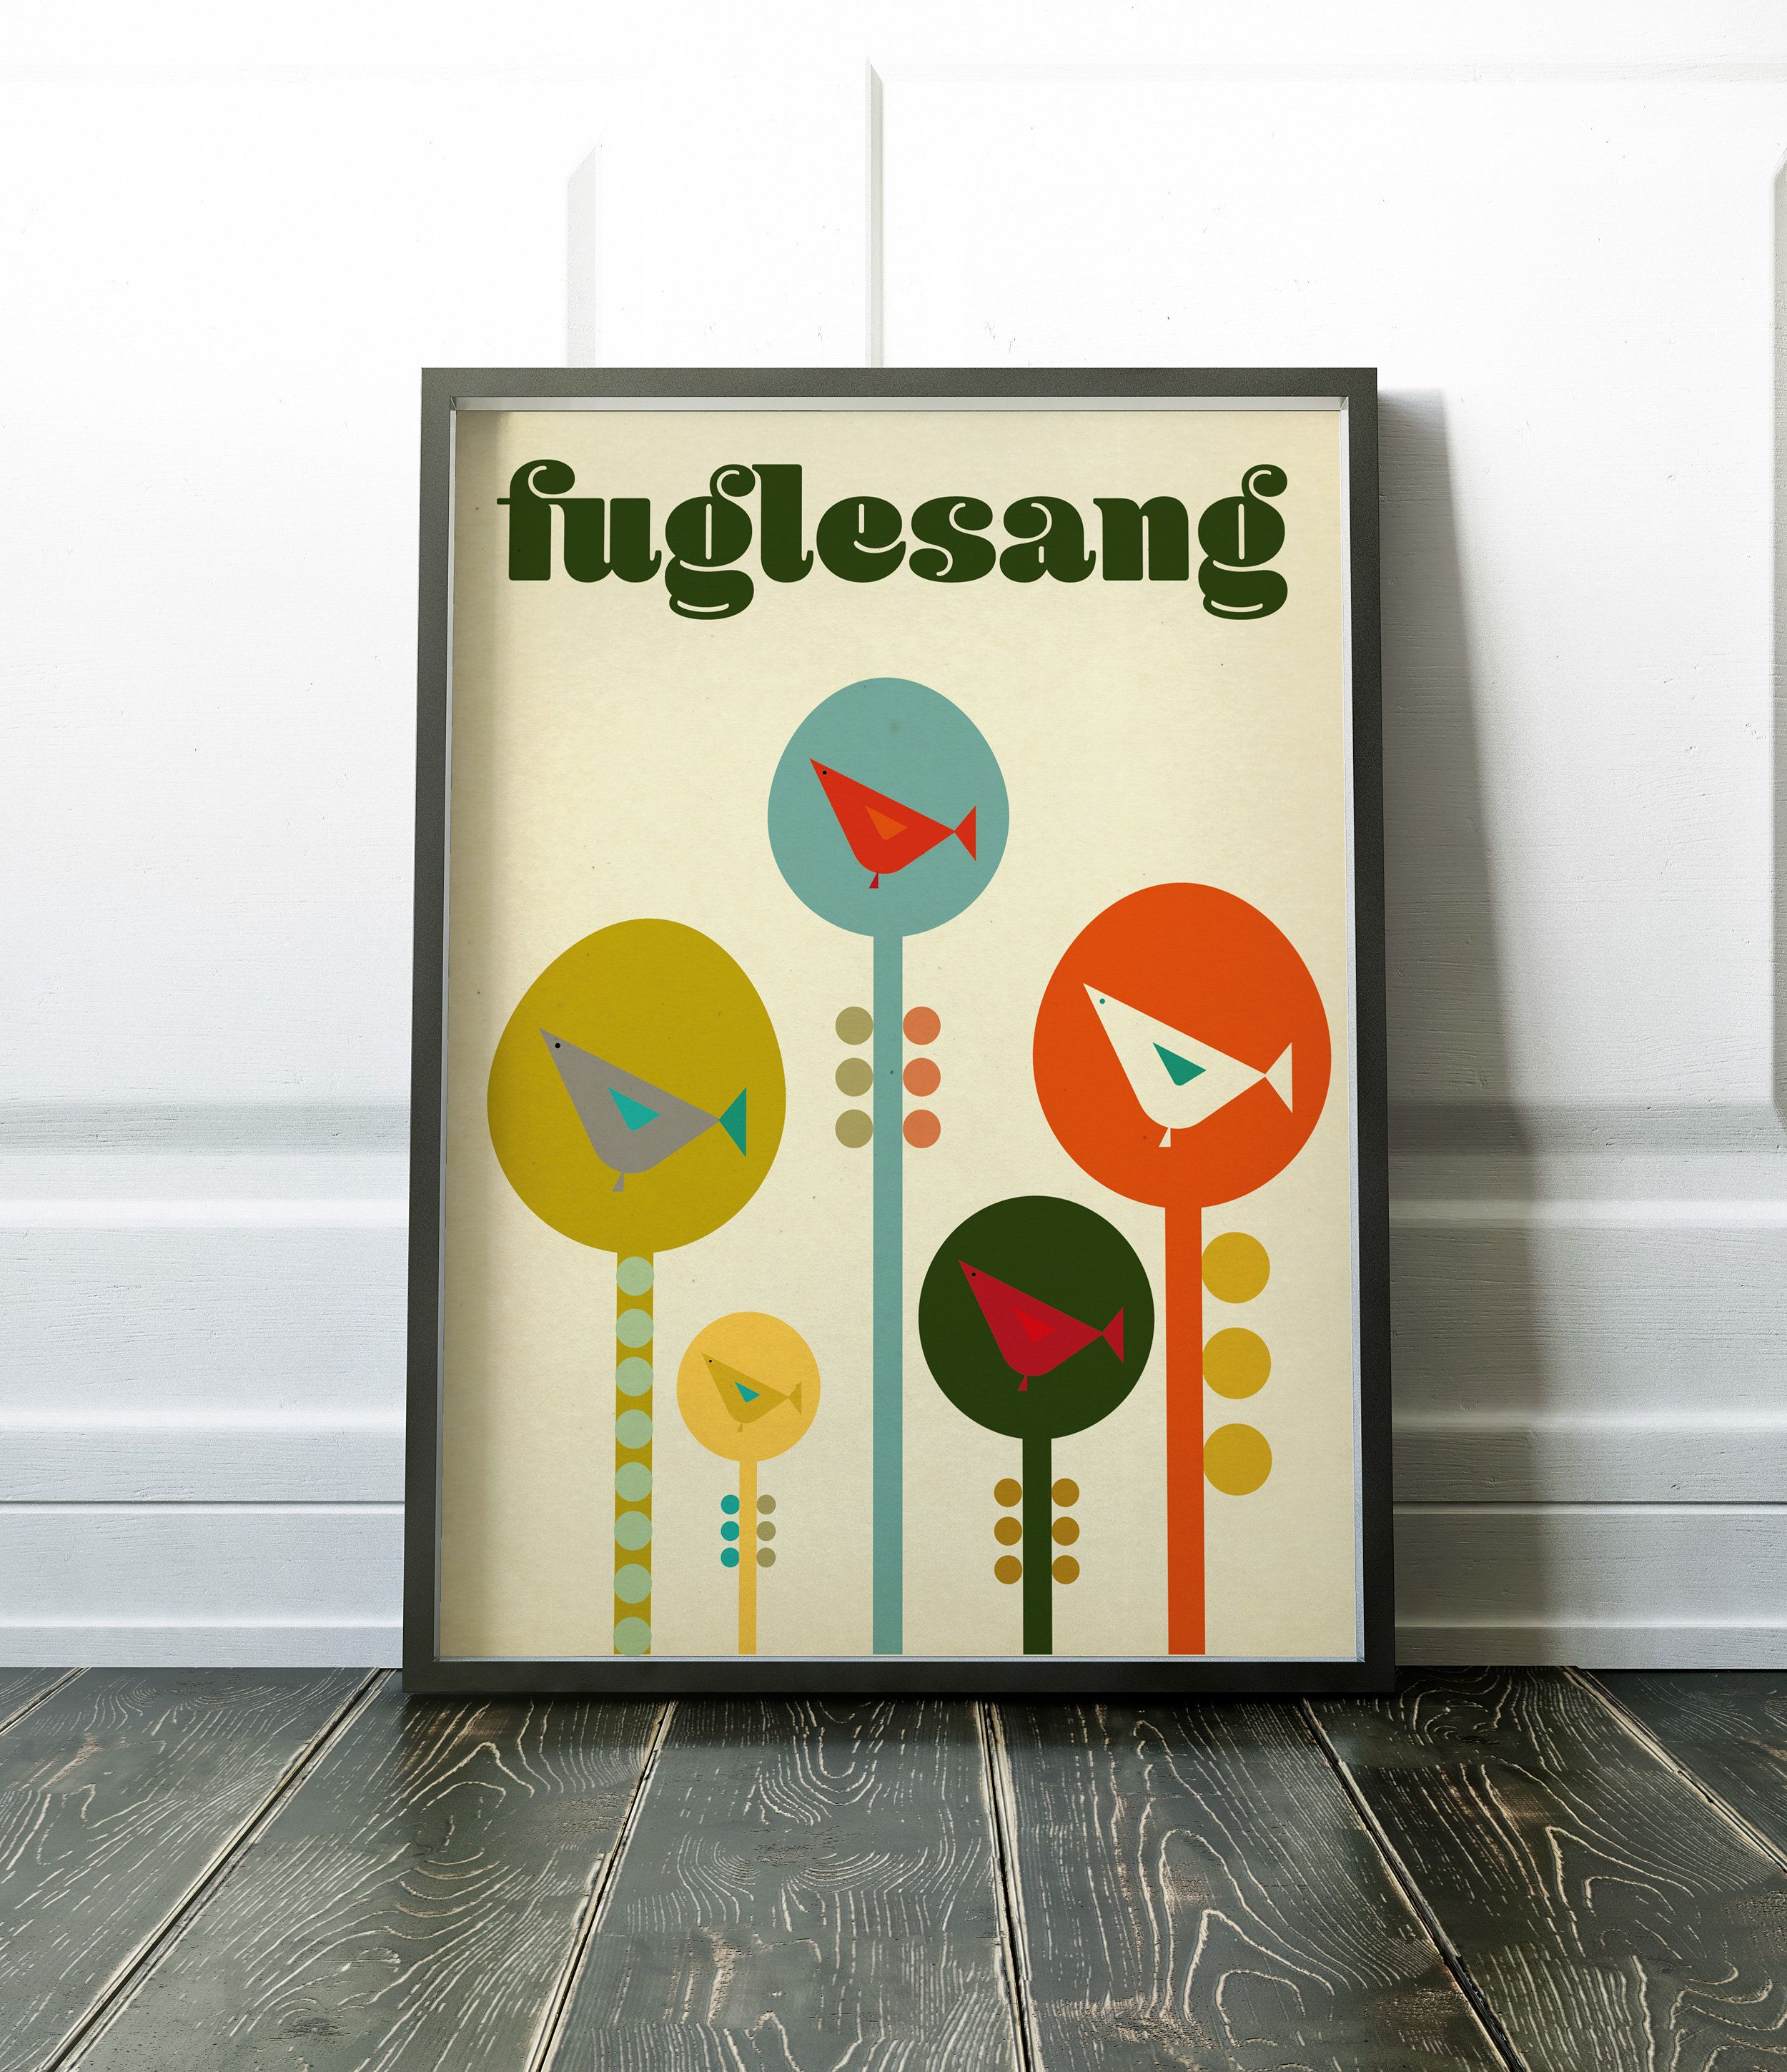 Fuglesang Contemporary Modern Scandinavian Style Art Poster Poster Art Contemporary Art Prints Art Prints For Sale